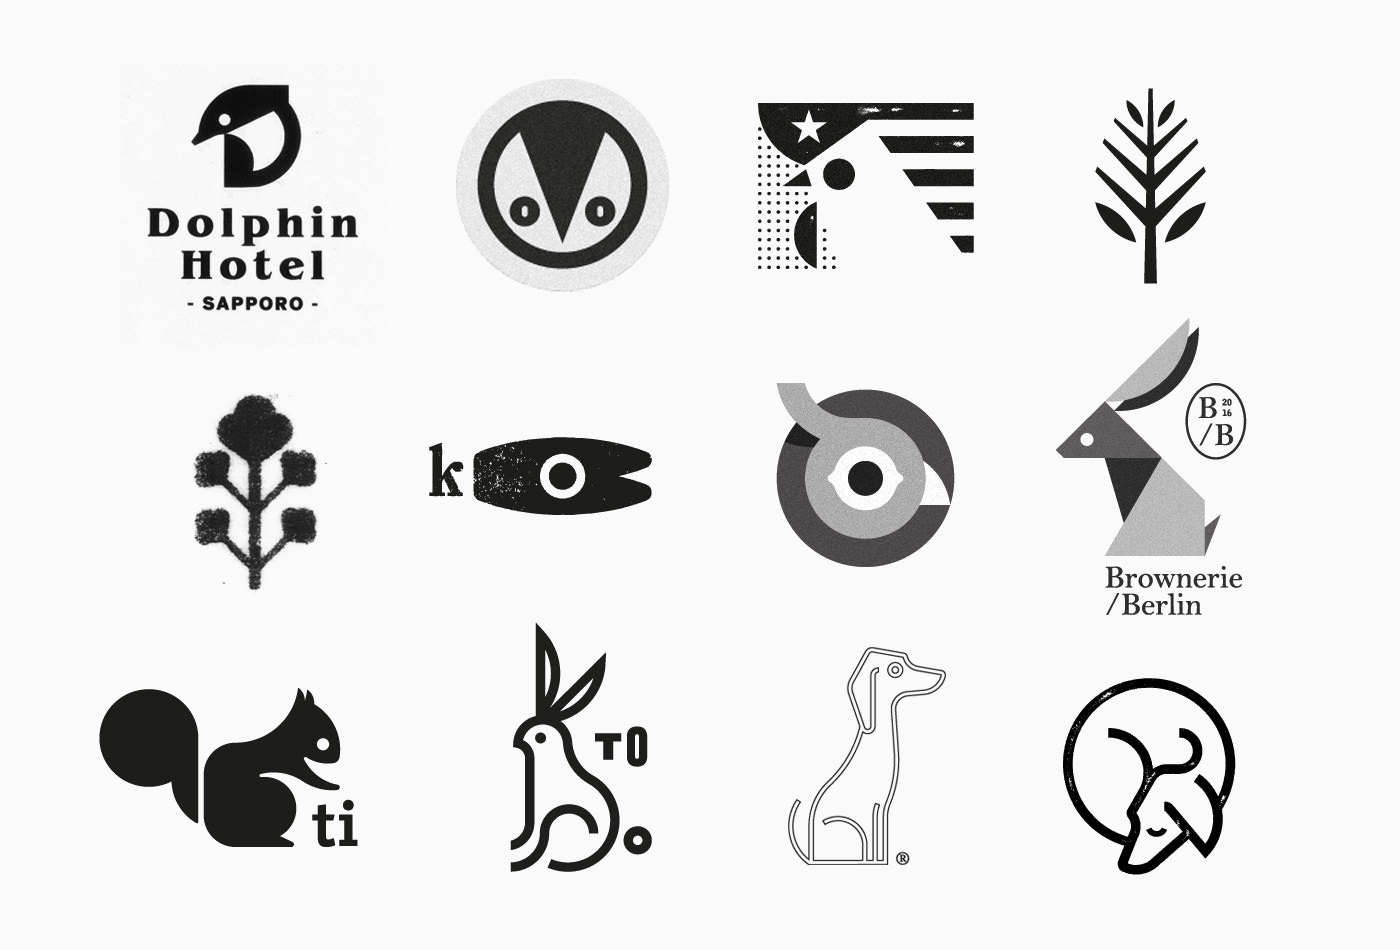 mark-logo-logos-logotype-brand-branding-pittogramma-vacaliebres-marks-pictograms-signs-picto